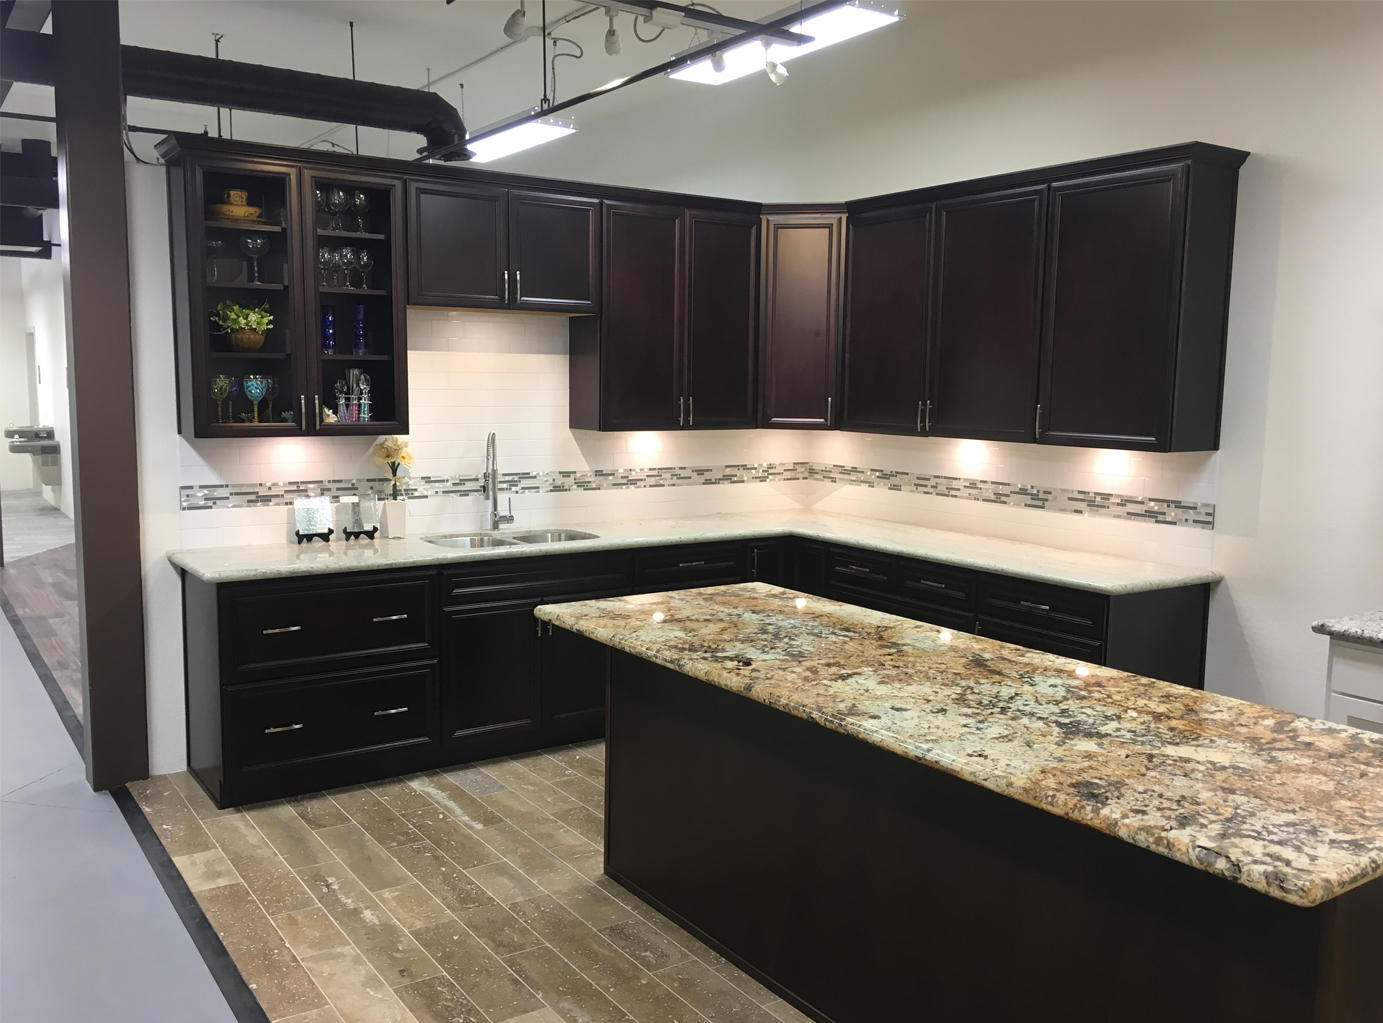 Superior stone and cabinet inc phoenix az company for Capital one kitchen cabinets